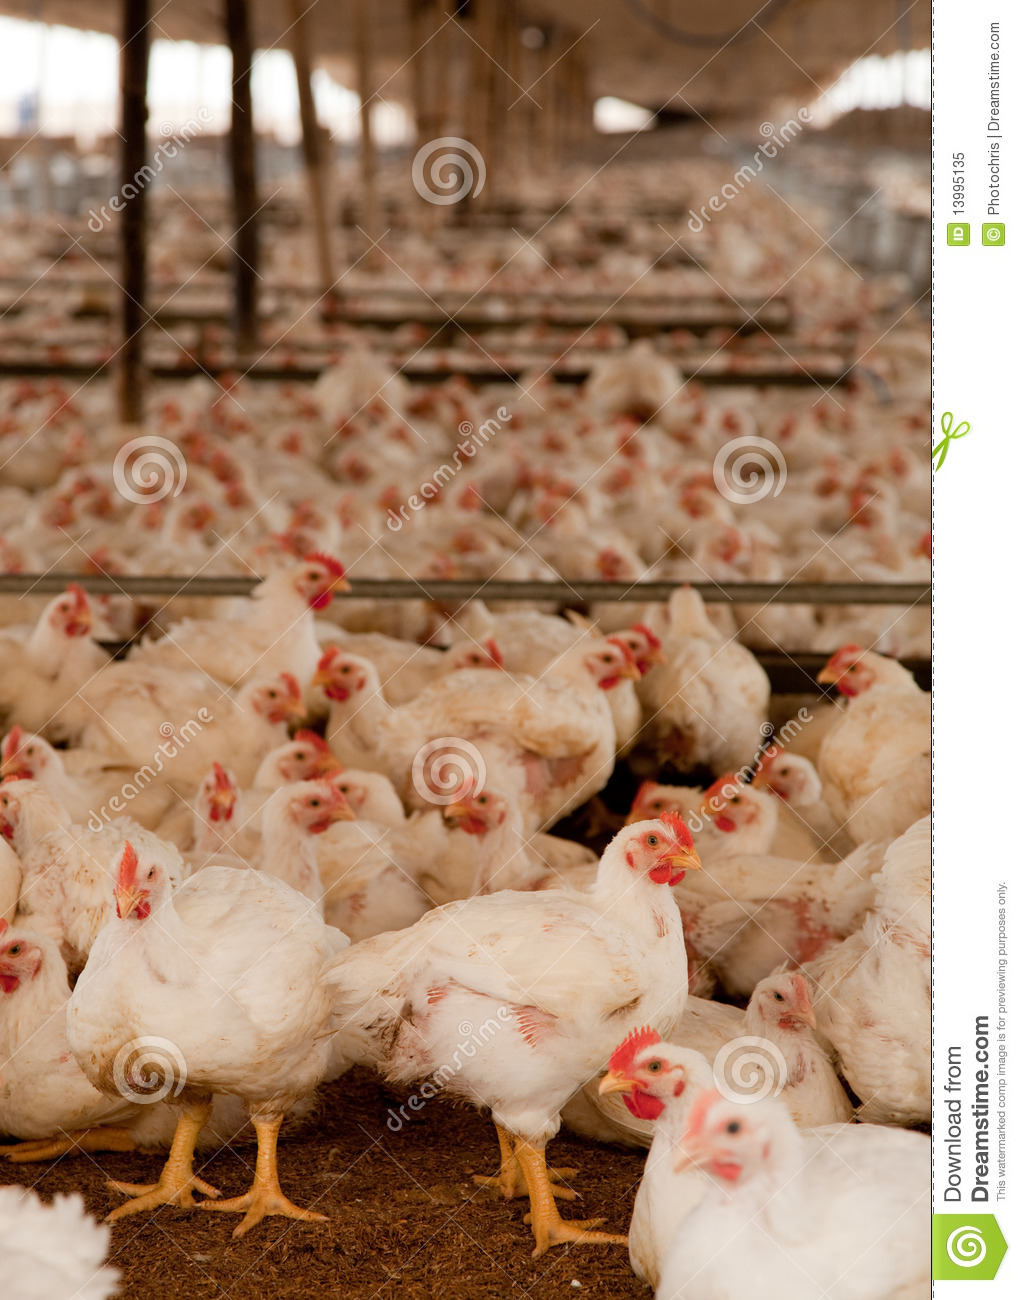 Chickens in Cot